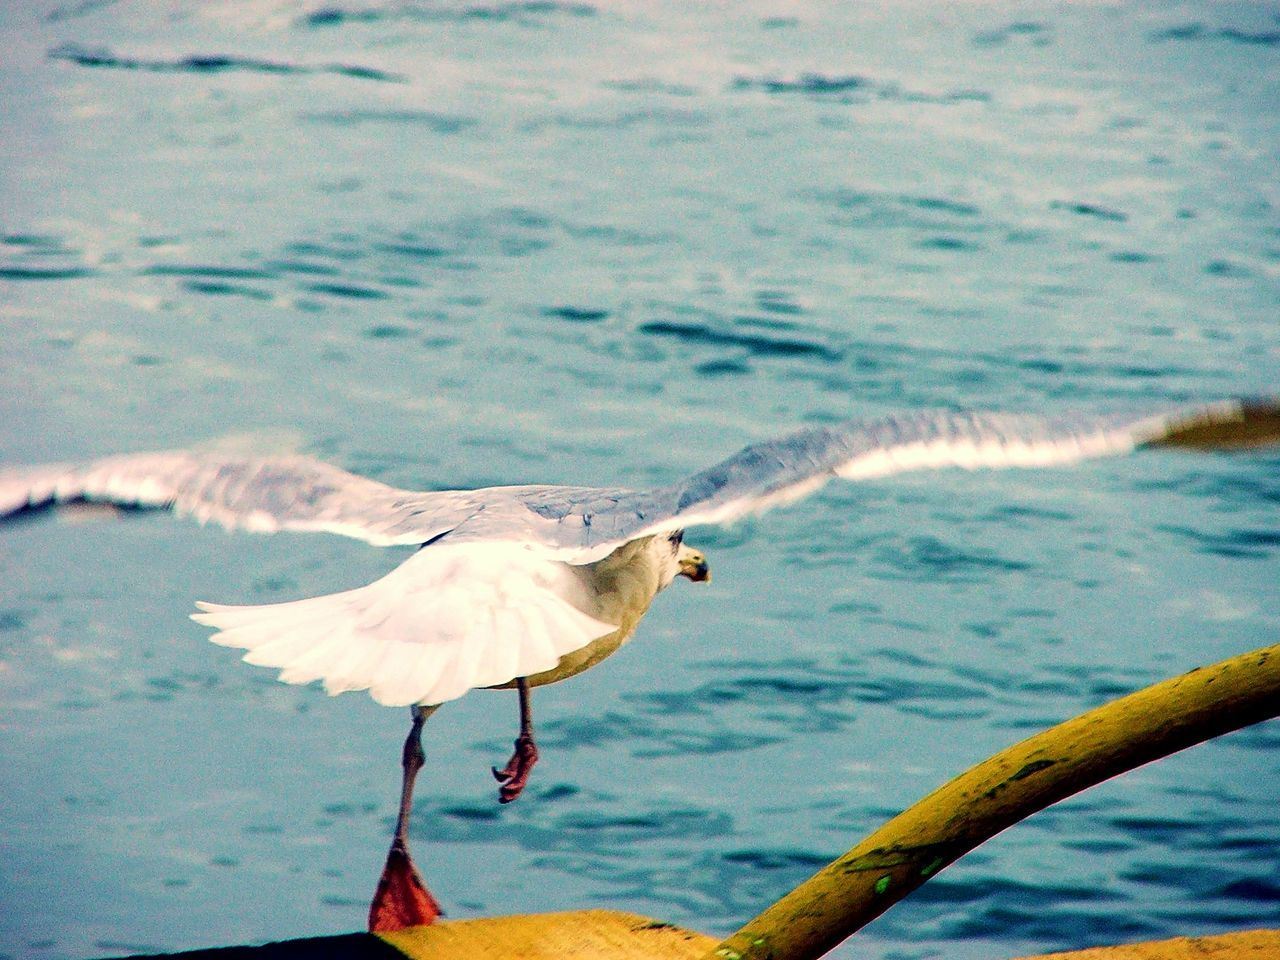 3...2...1...Go! Bird Animal Themes Animals In The Wild Nature Water Spread Wings No People Animal Wildlife Sea Outdoors Beauty In Nature Day Seagull Start Startup EyeEm Nature Lover